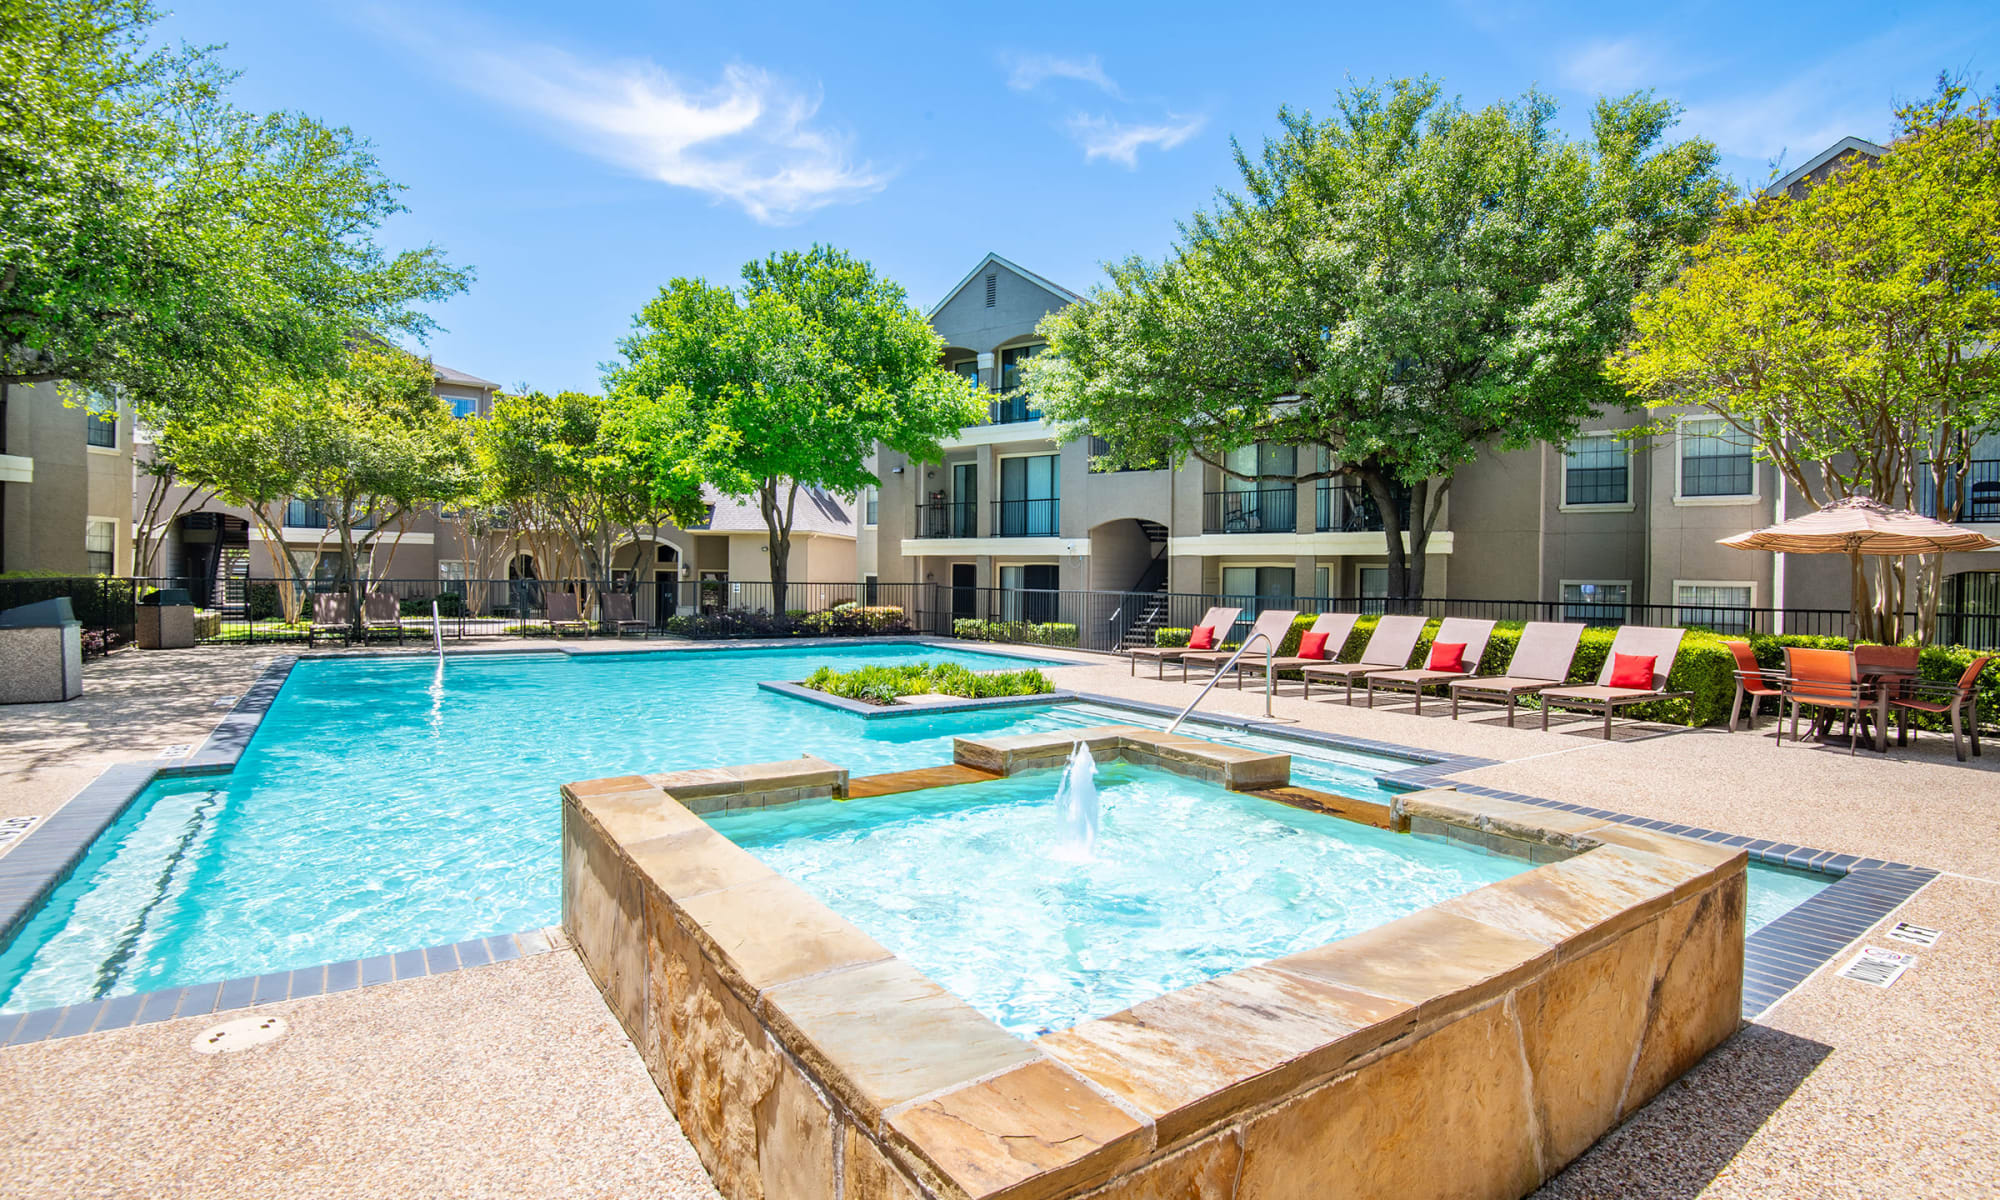 Garage Apartment For Rent In Dallas Apartments In North Dallas Tx Near Addison Briargrove At Vail